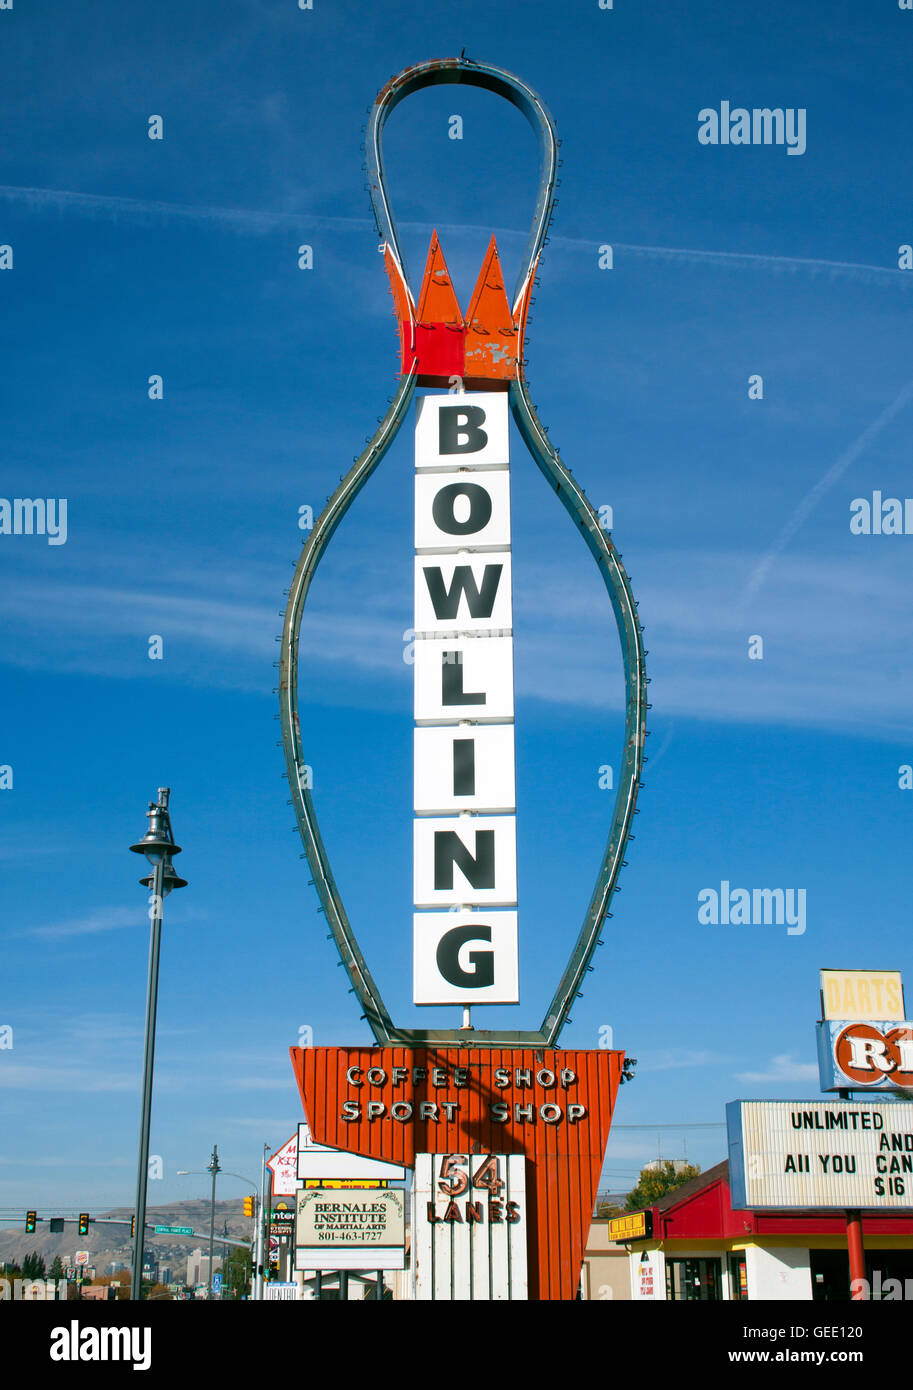 Bowling Pin Sign at an an alley in Salt Lake City Utah - Stock Image